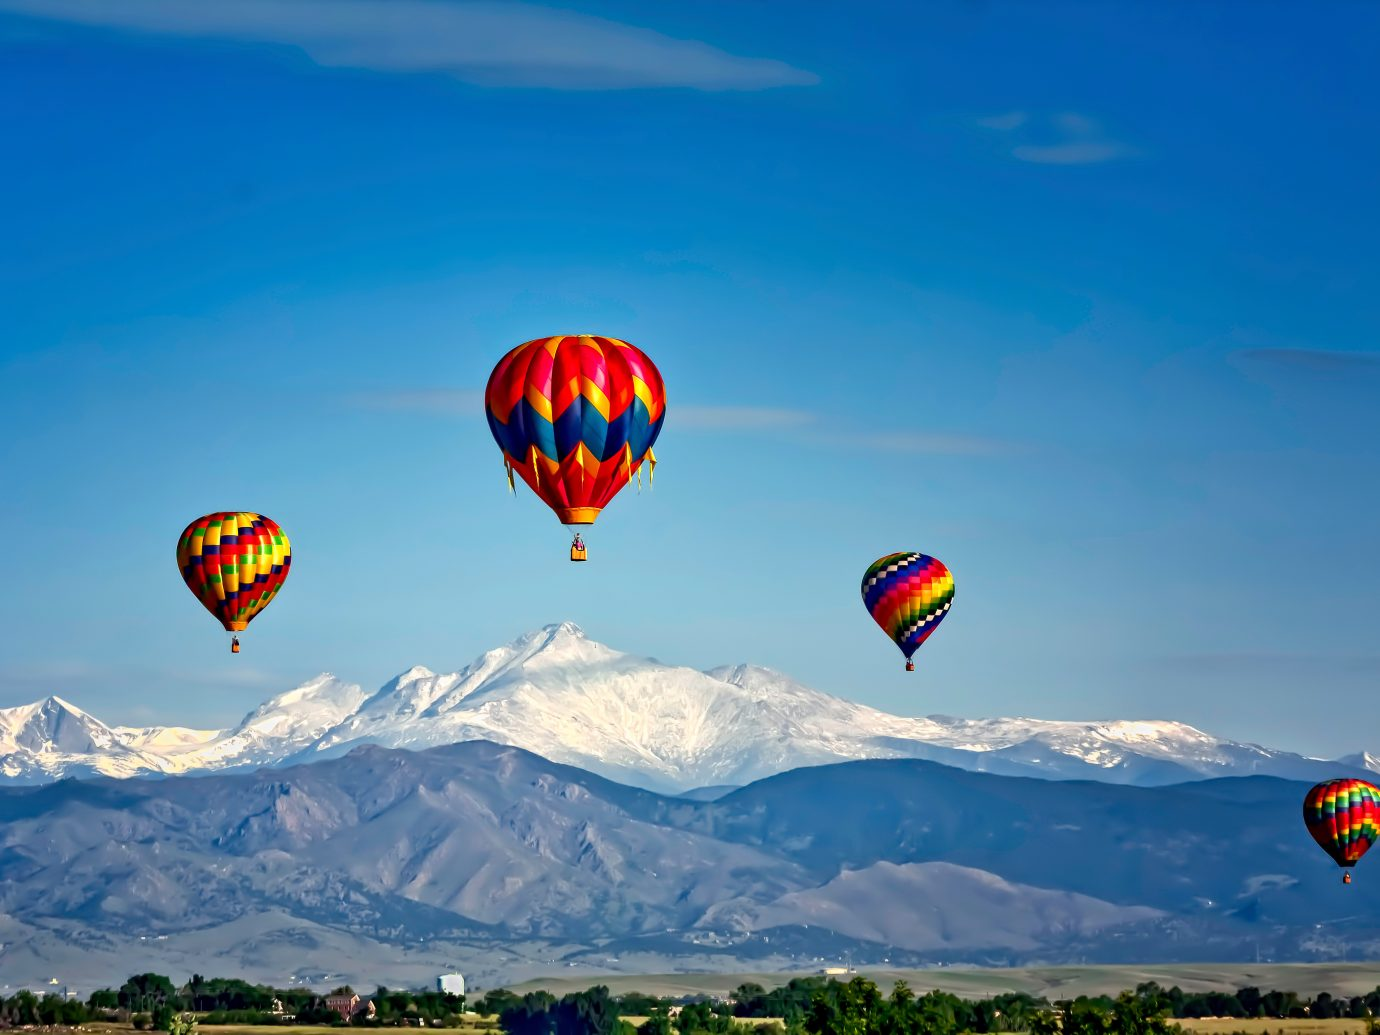 Adventure Mountains Outdoors Scenic views Trip Ideas balloon aircraft sky transport kite mountain hot air ballooning flying Hot Air Balloon outdoor field vehicle atmosphere of earth toy air sports open extreme sport hill flight colorful day hillside